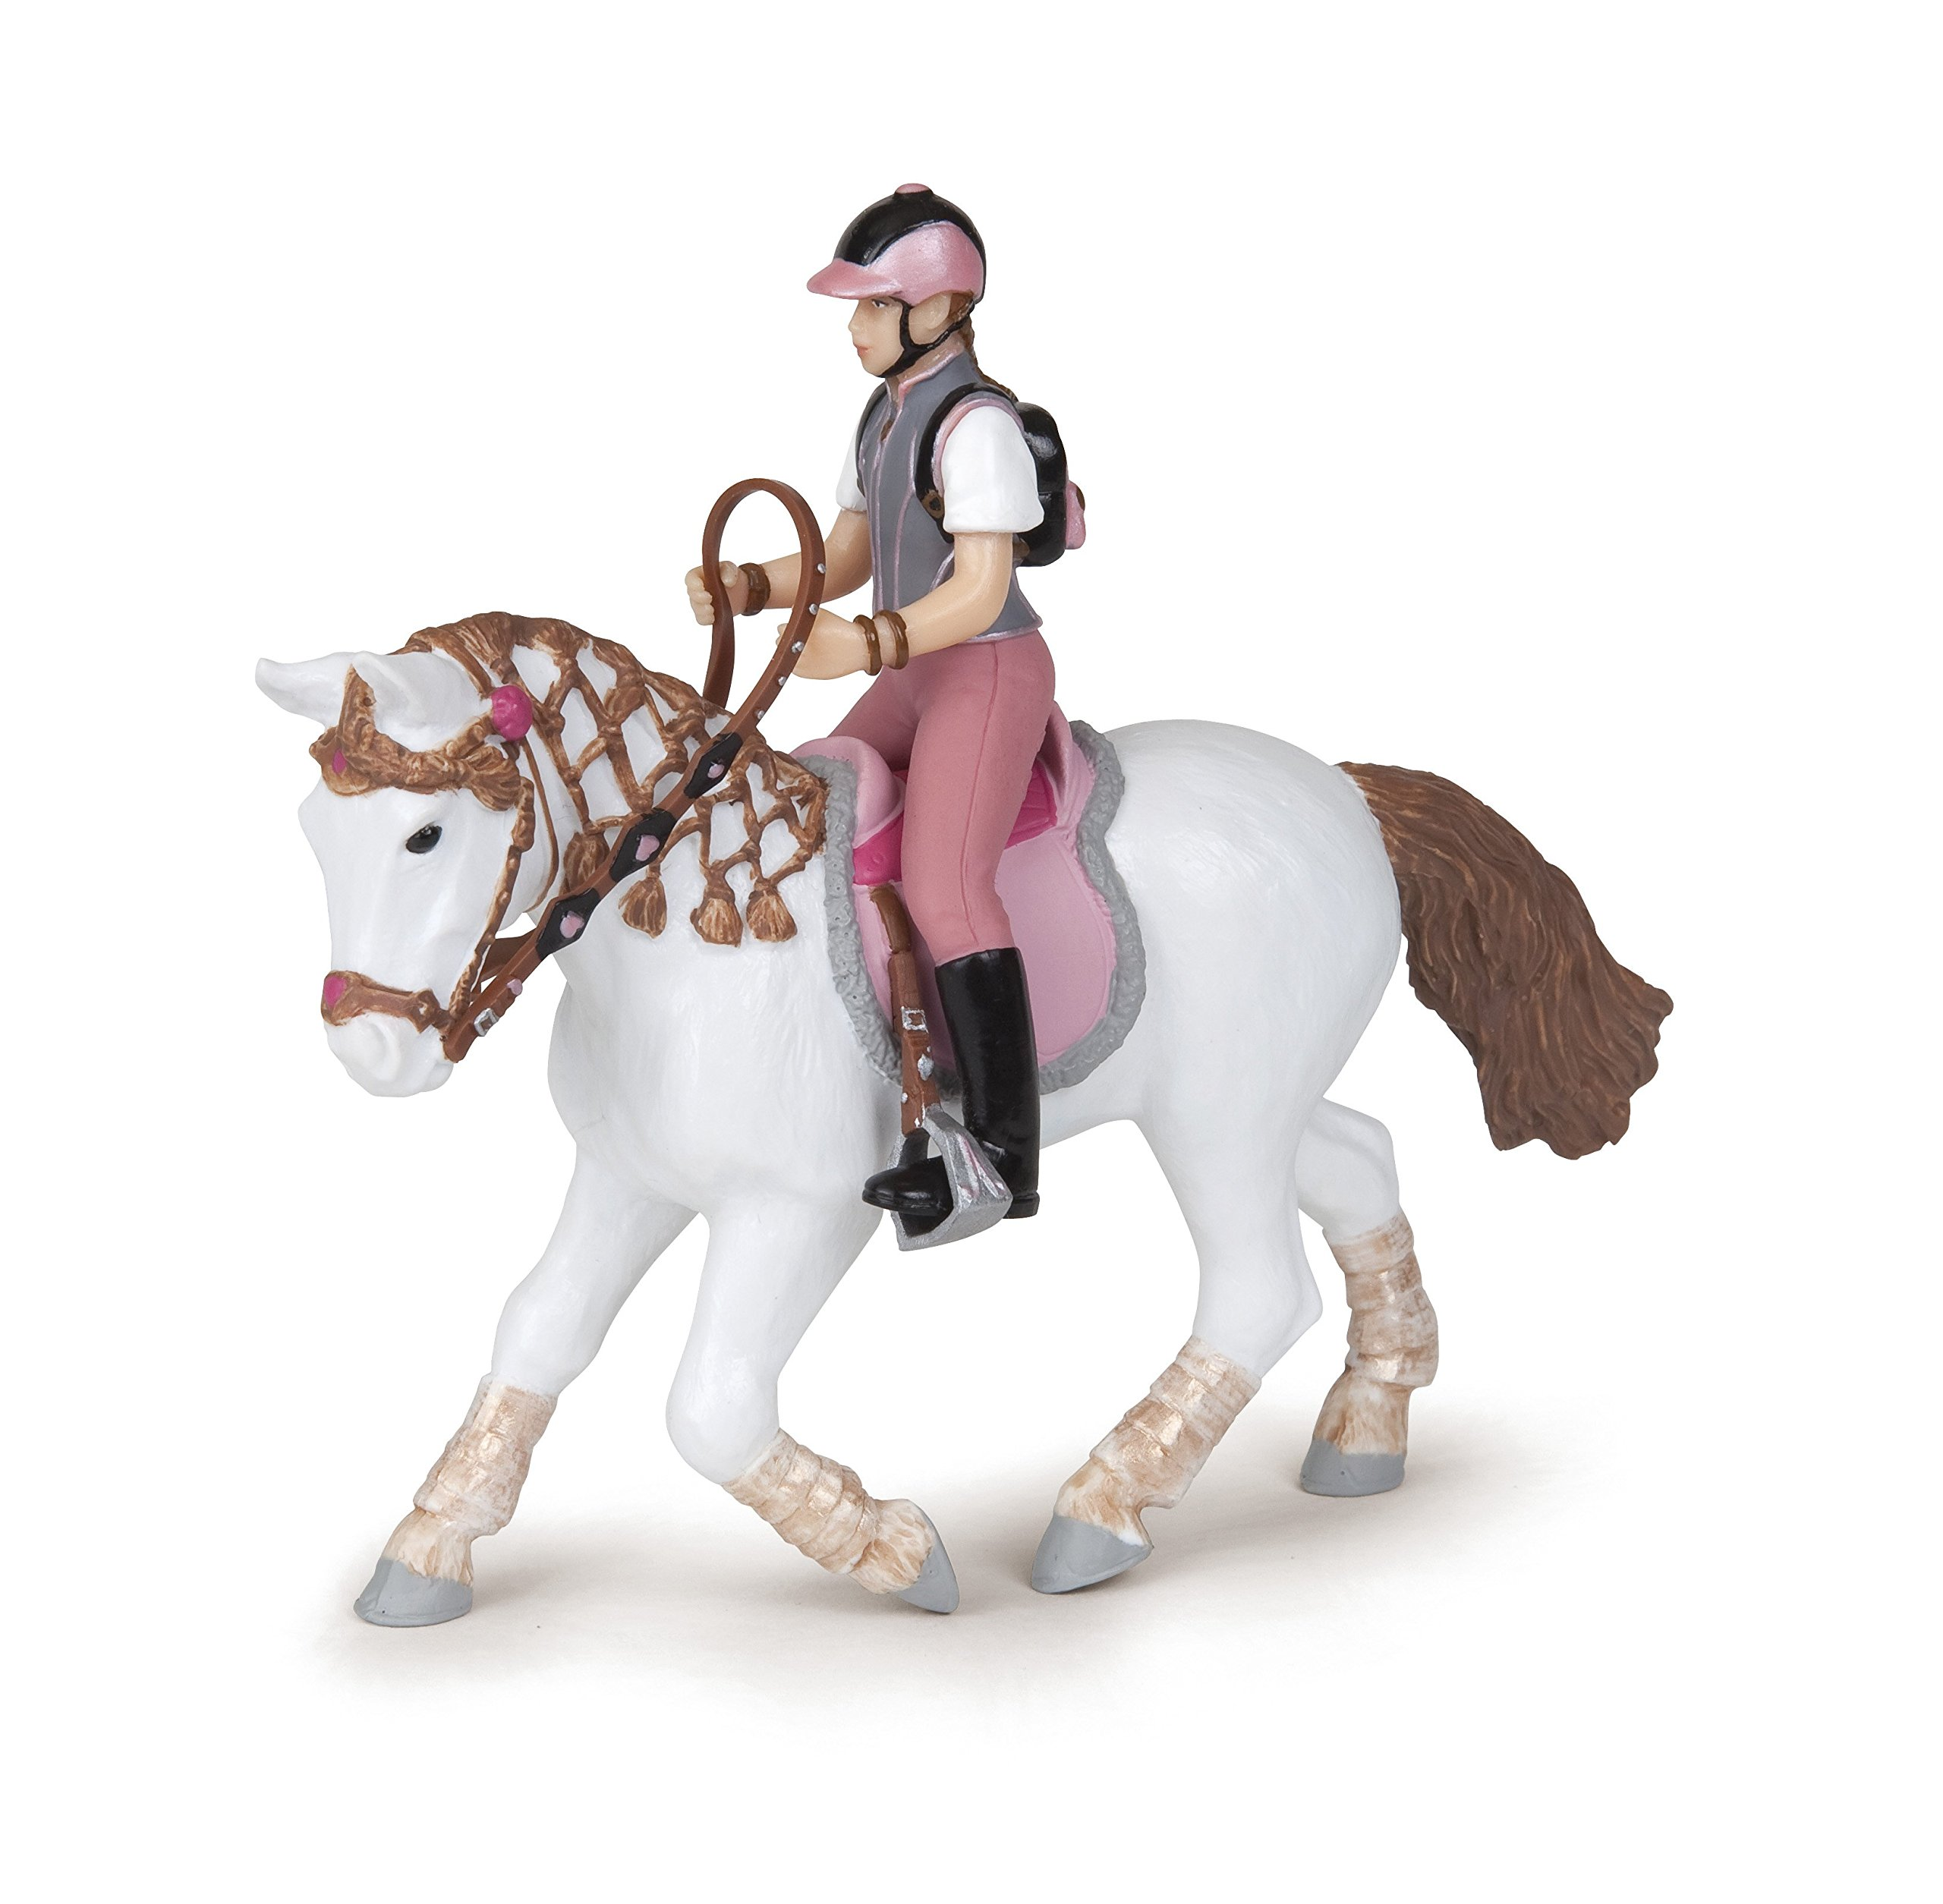 Papo 3465000520076 Horse Equipment Young Trendy Riding Girl/PCE 905052007, oner Size, Other